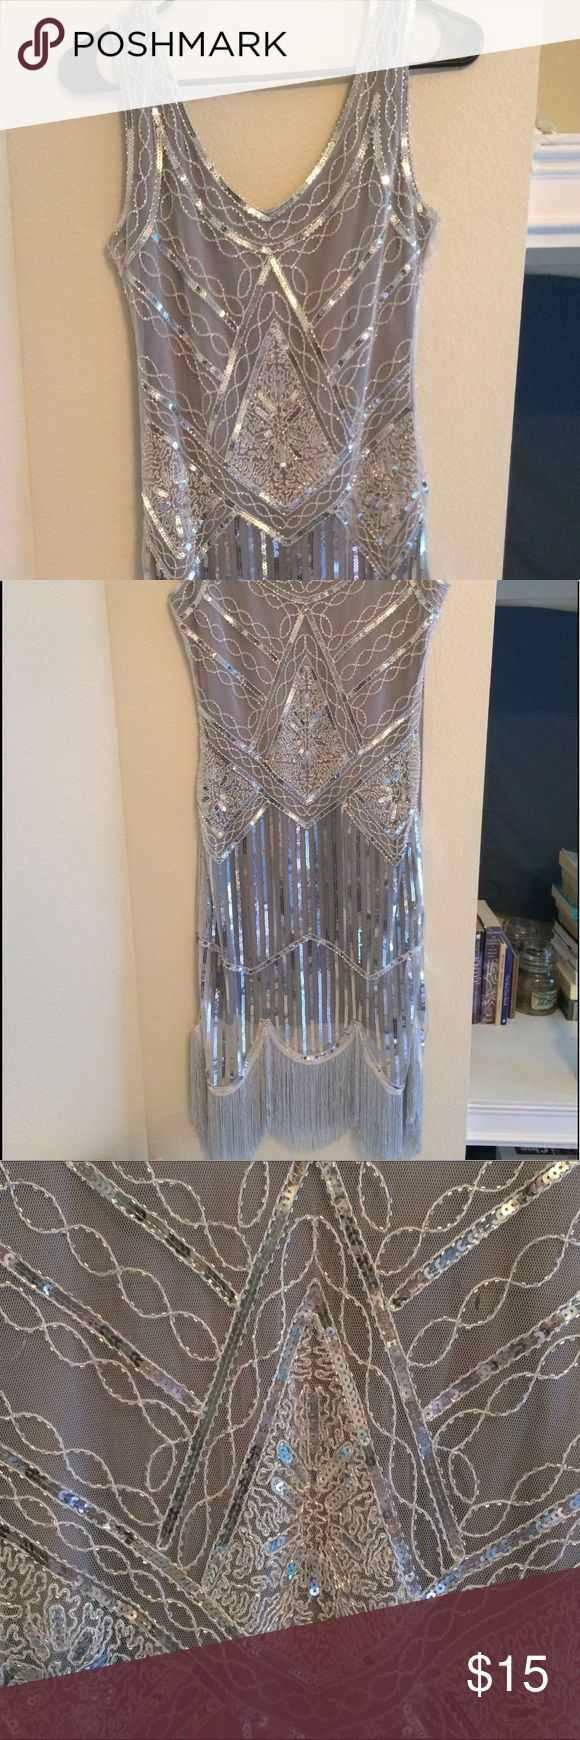 """1920s Sequined Fringed Flapper Dress XS Elegant, eye-catching embellished dress for special occasions or a roaring 20s party! Size zipper, 100% polyester. Worn once - has a very small 1/8"""" rip in the mesh overlay (see 3rd picture). Vijiv Dresses Prom"""